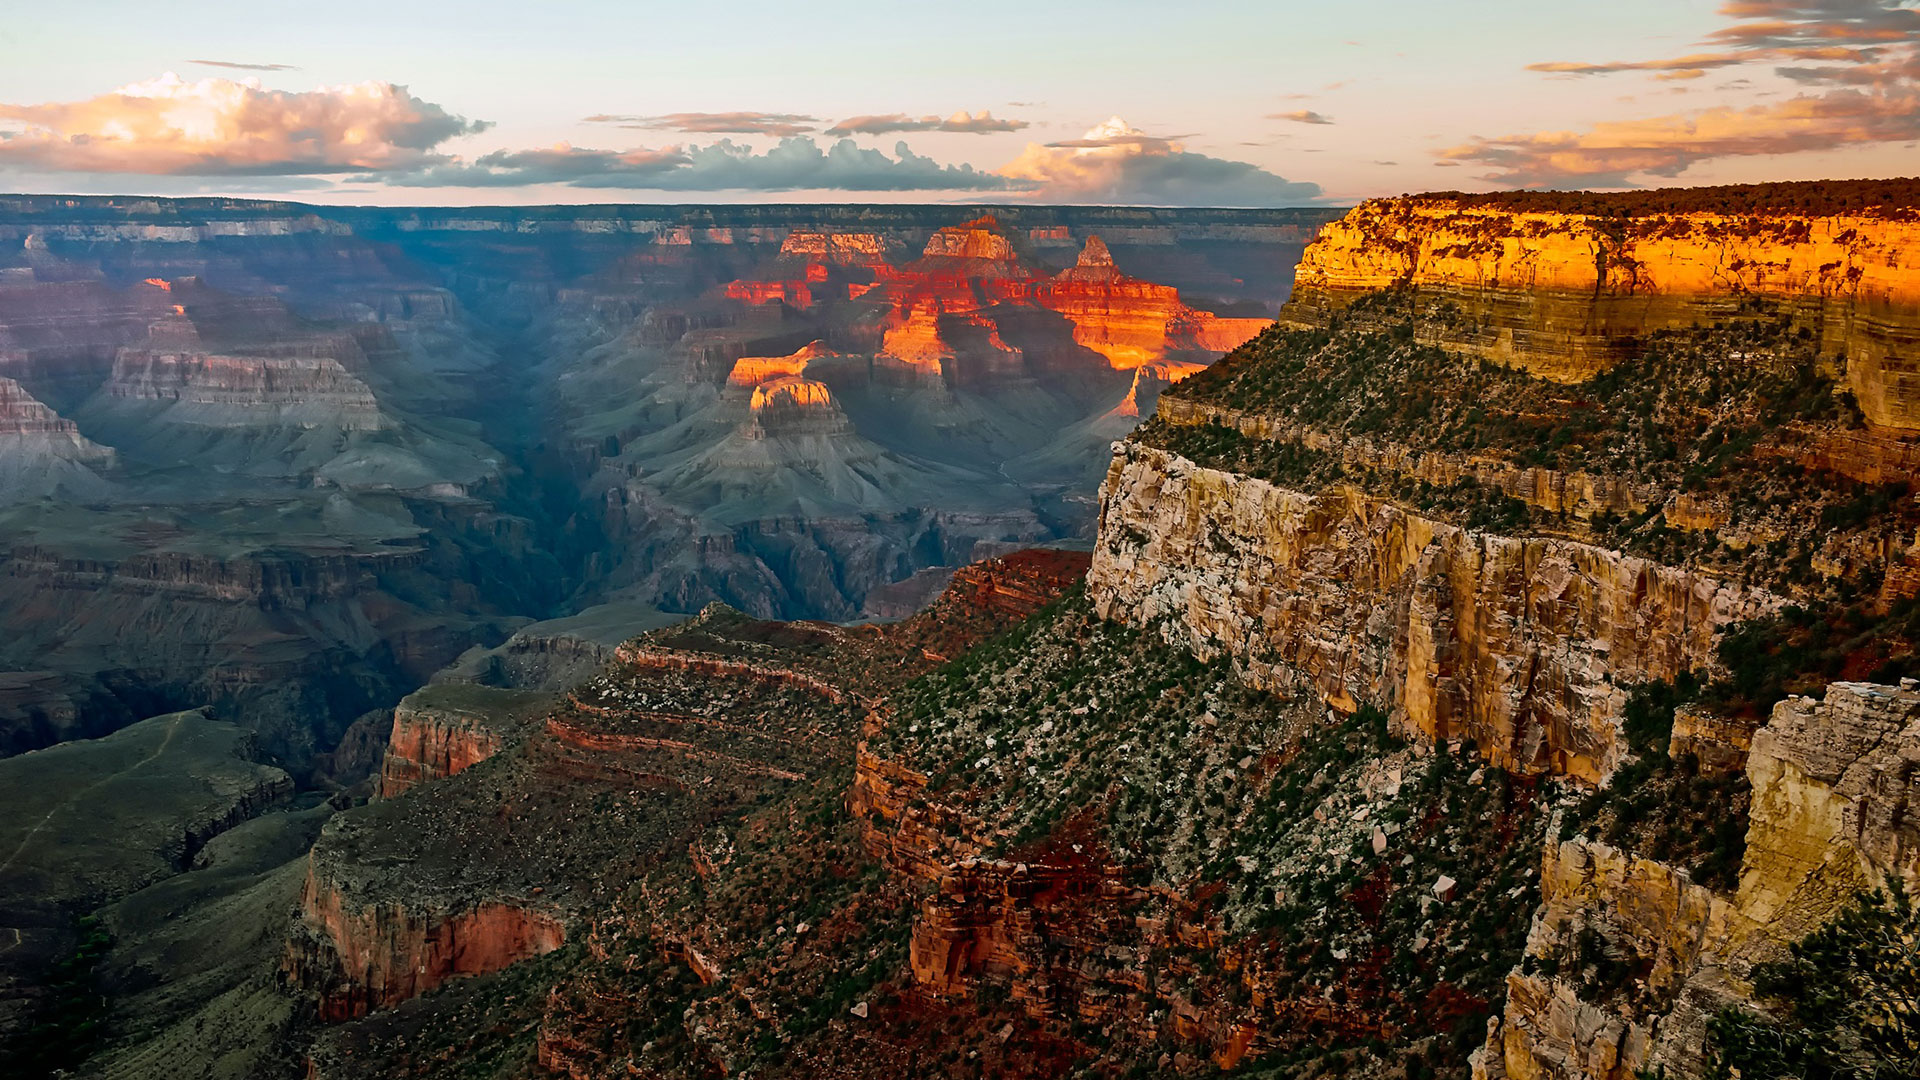 A beautiful grand Canyon vantage point at sunset.